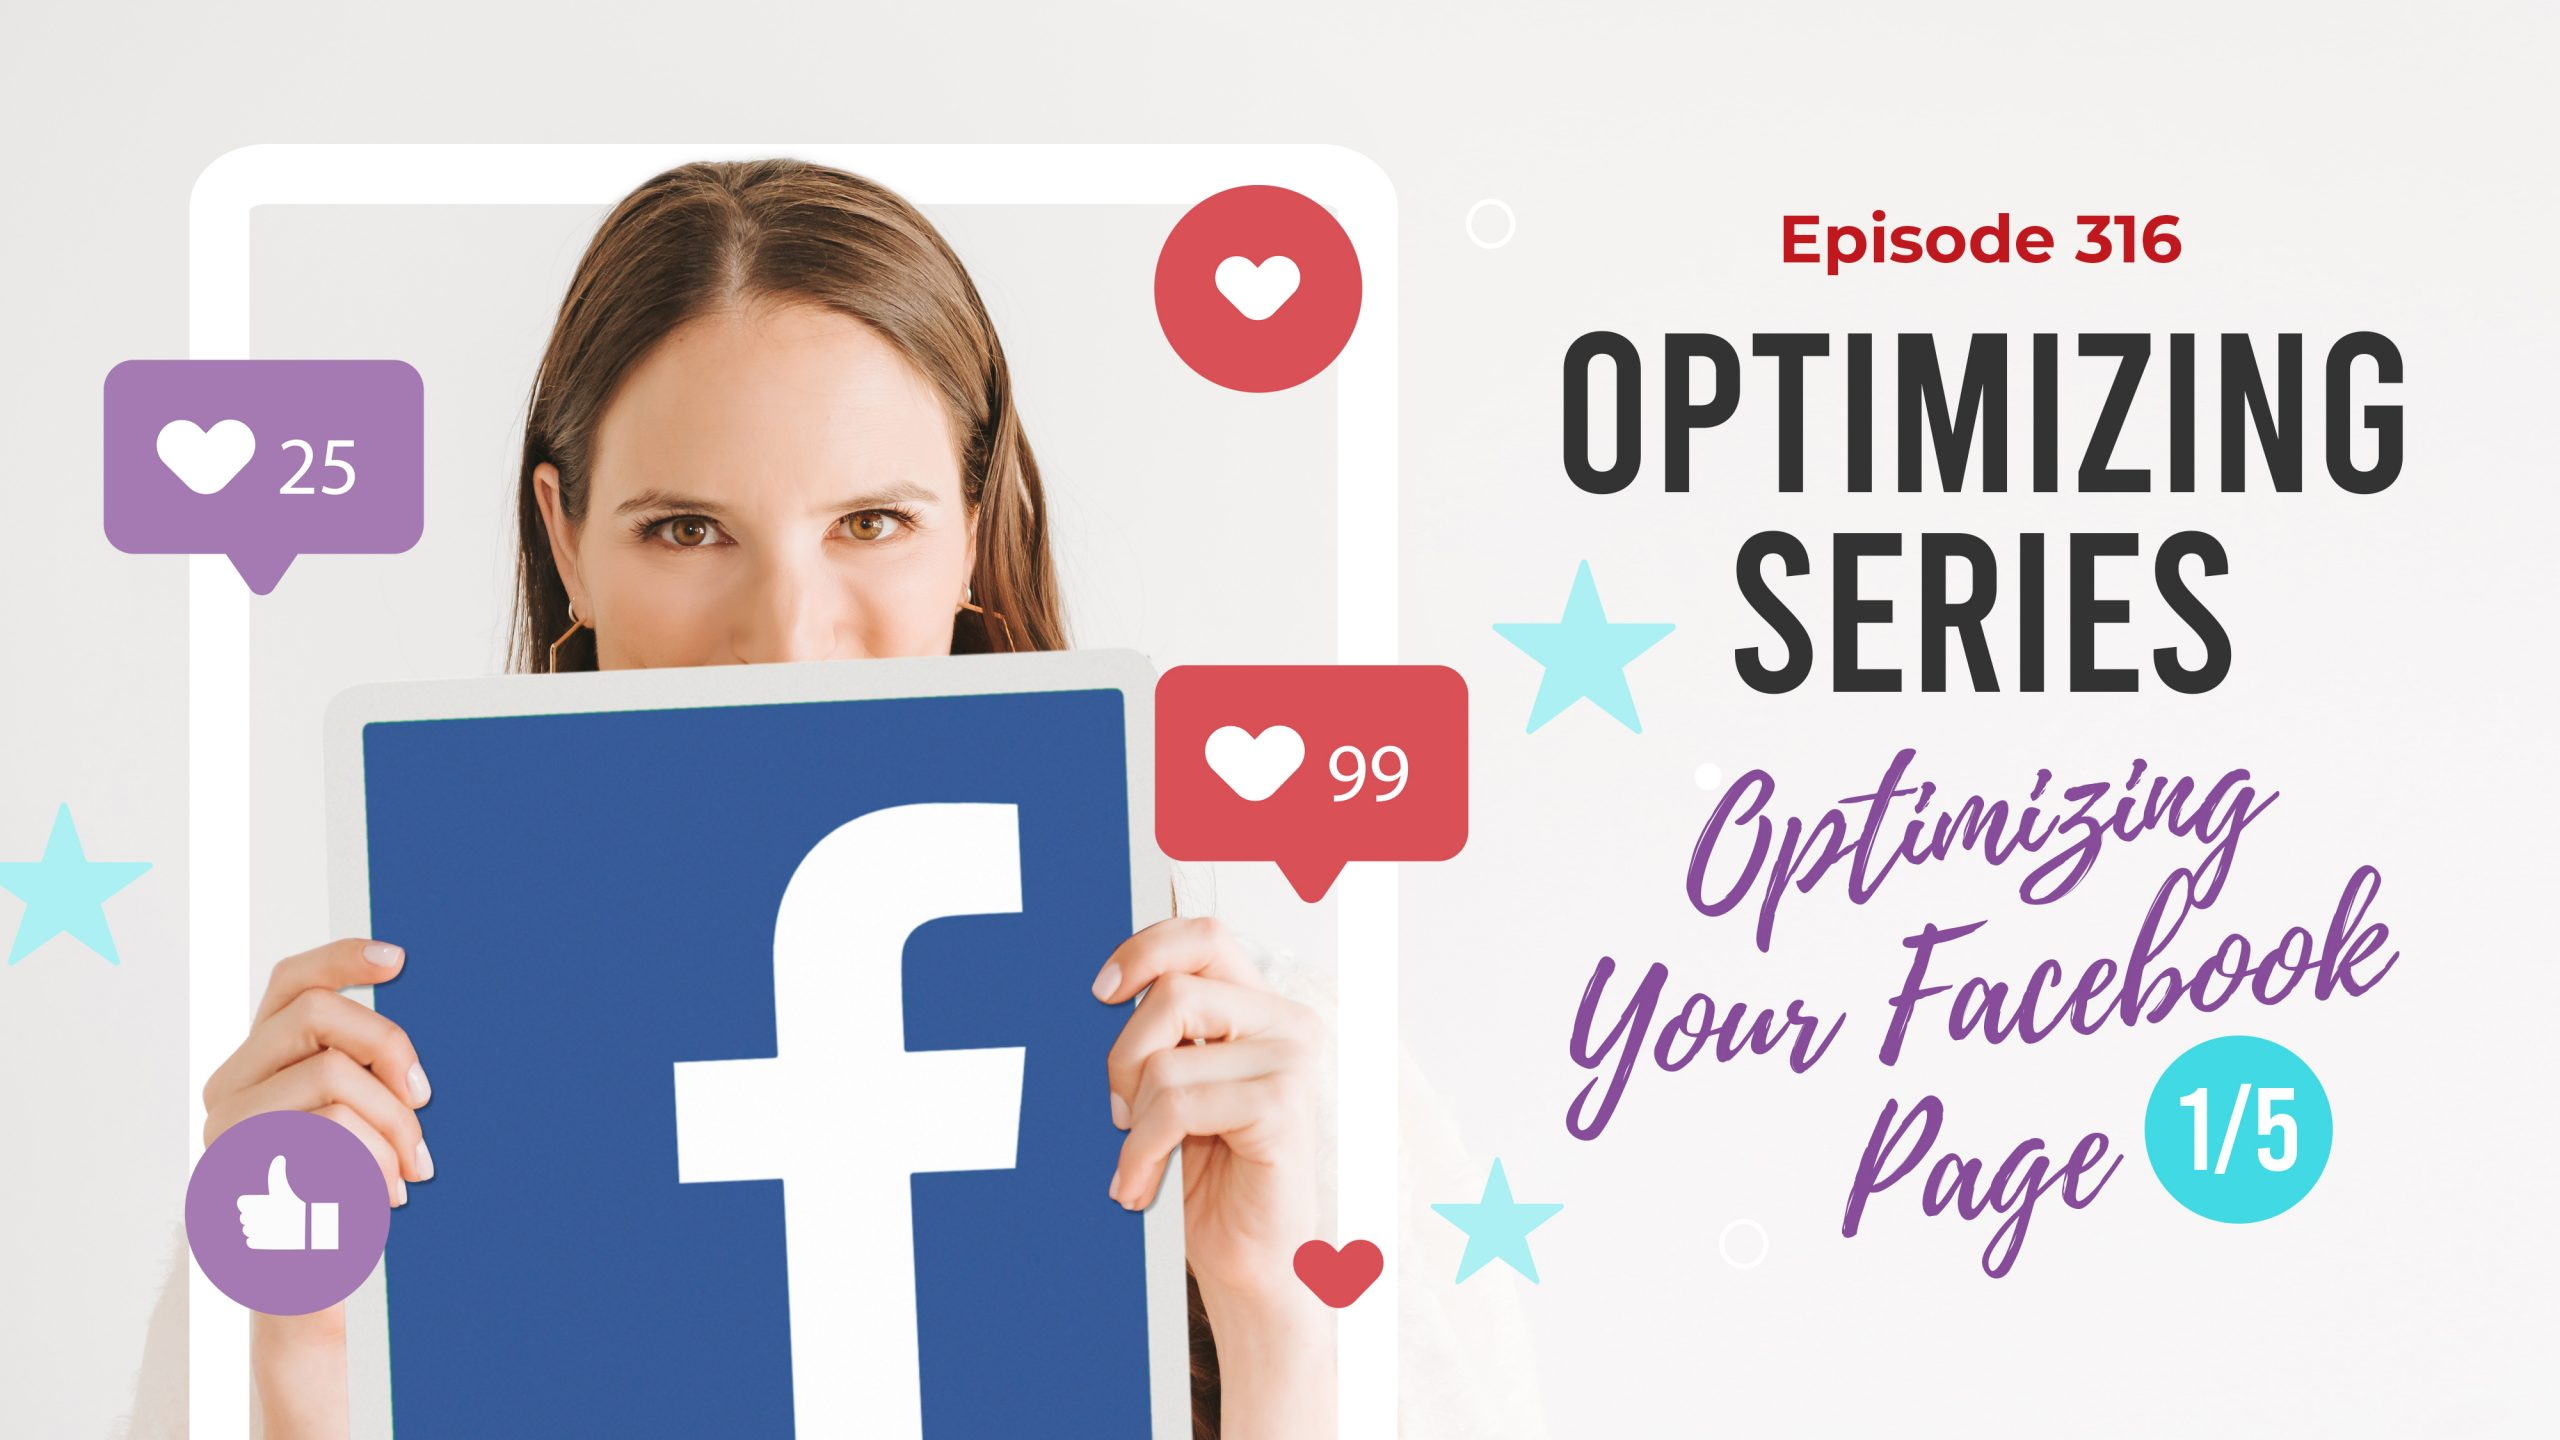 Ep. 316: Optimizing Series: Optimizing Your Facebook Page 1/5